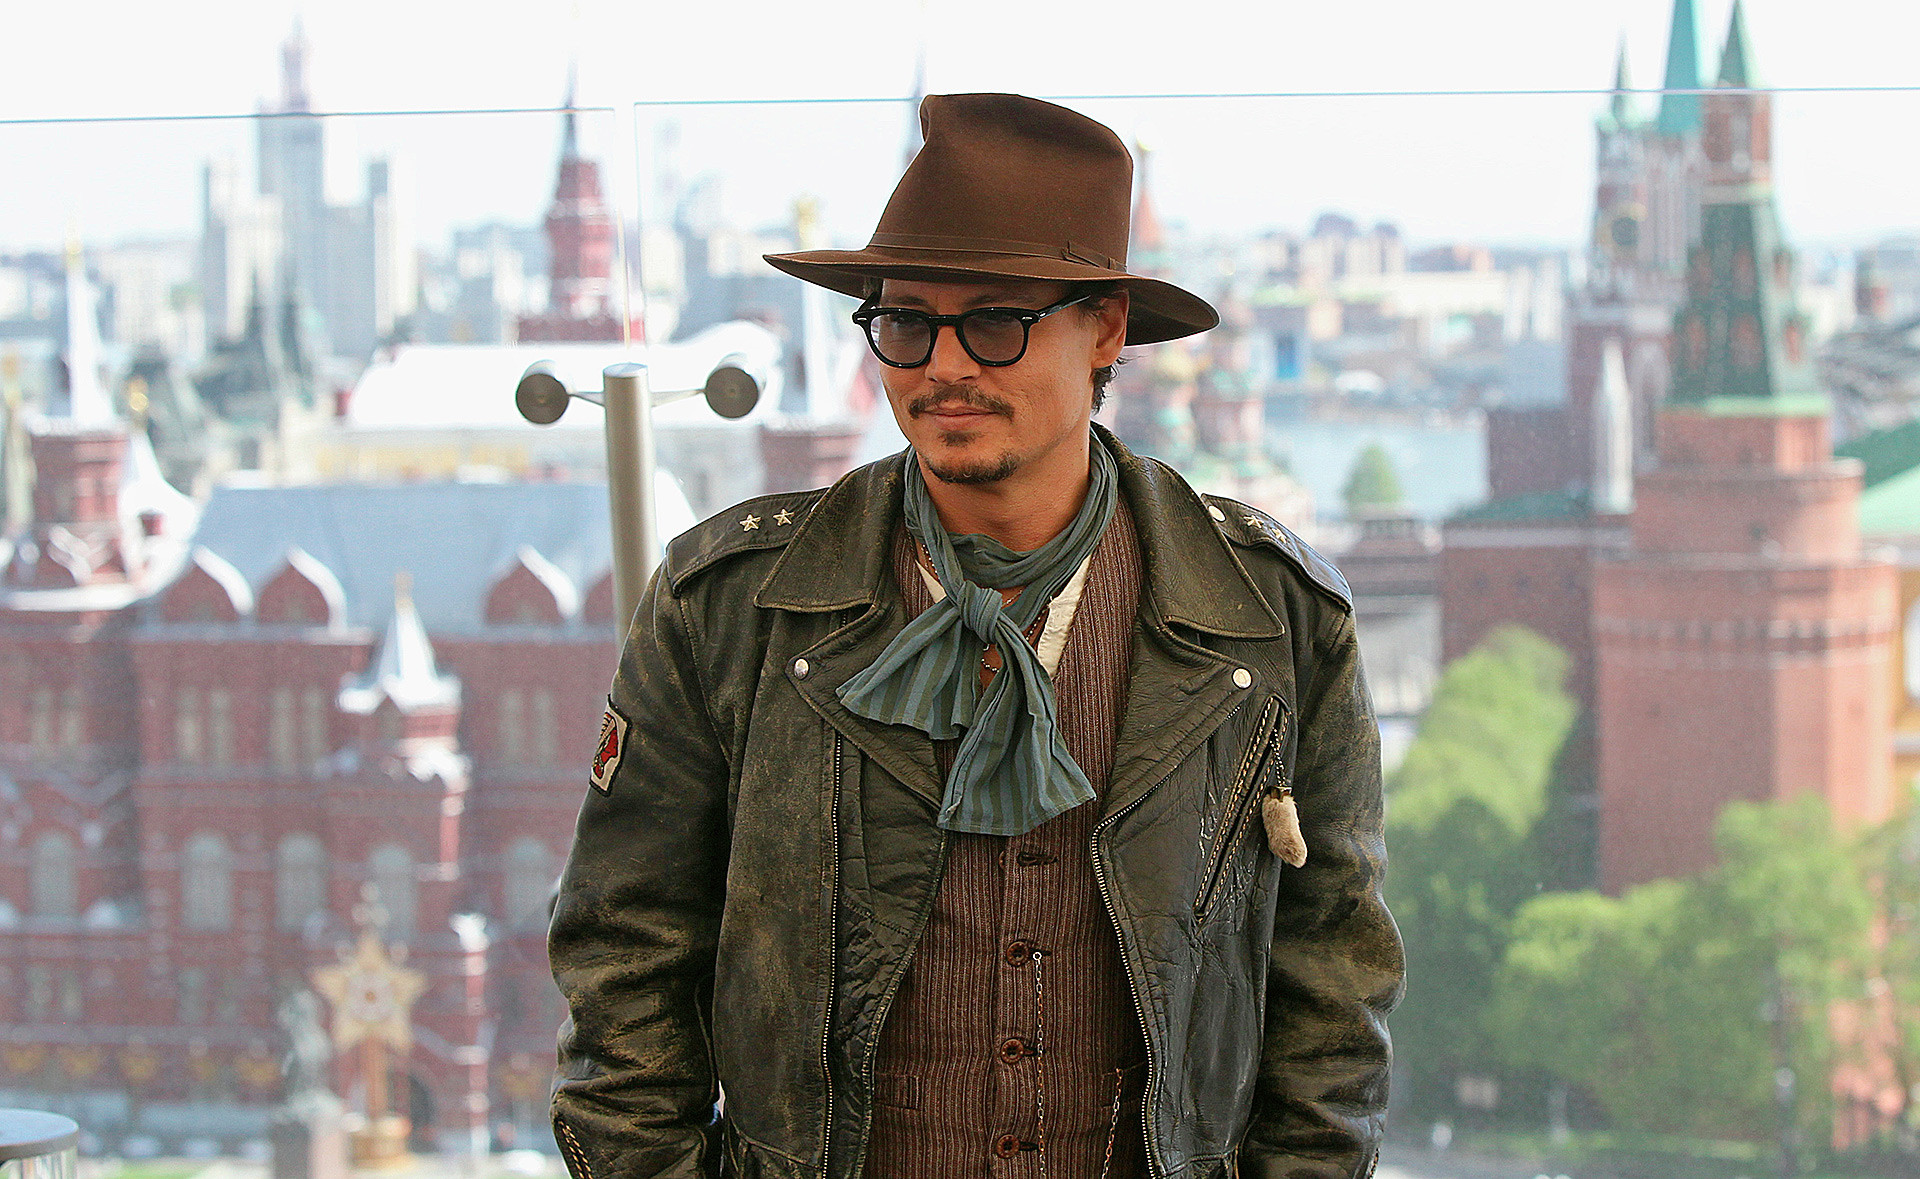 Earlier, Johnny Depp used to come to Moscow to promote his movies